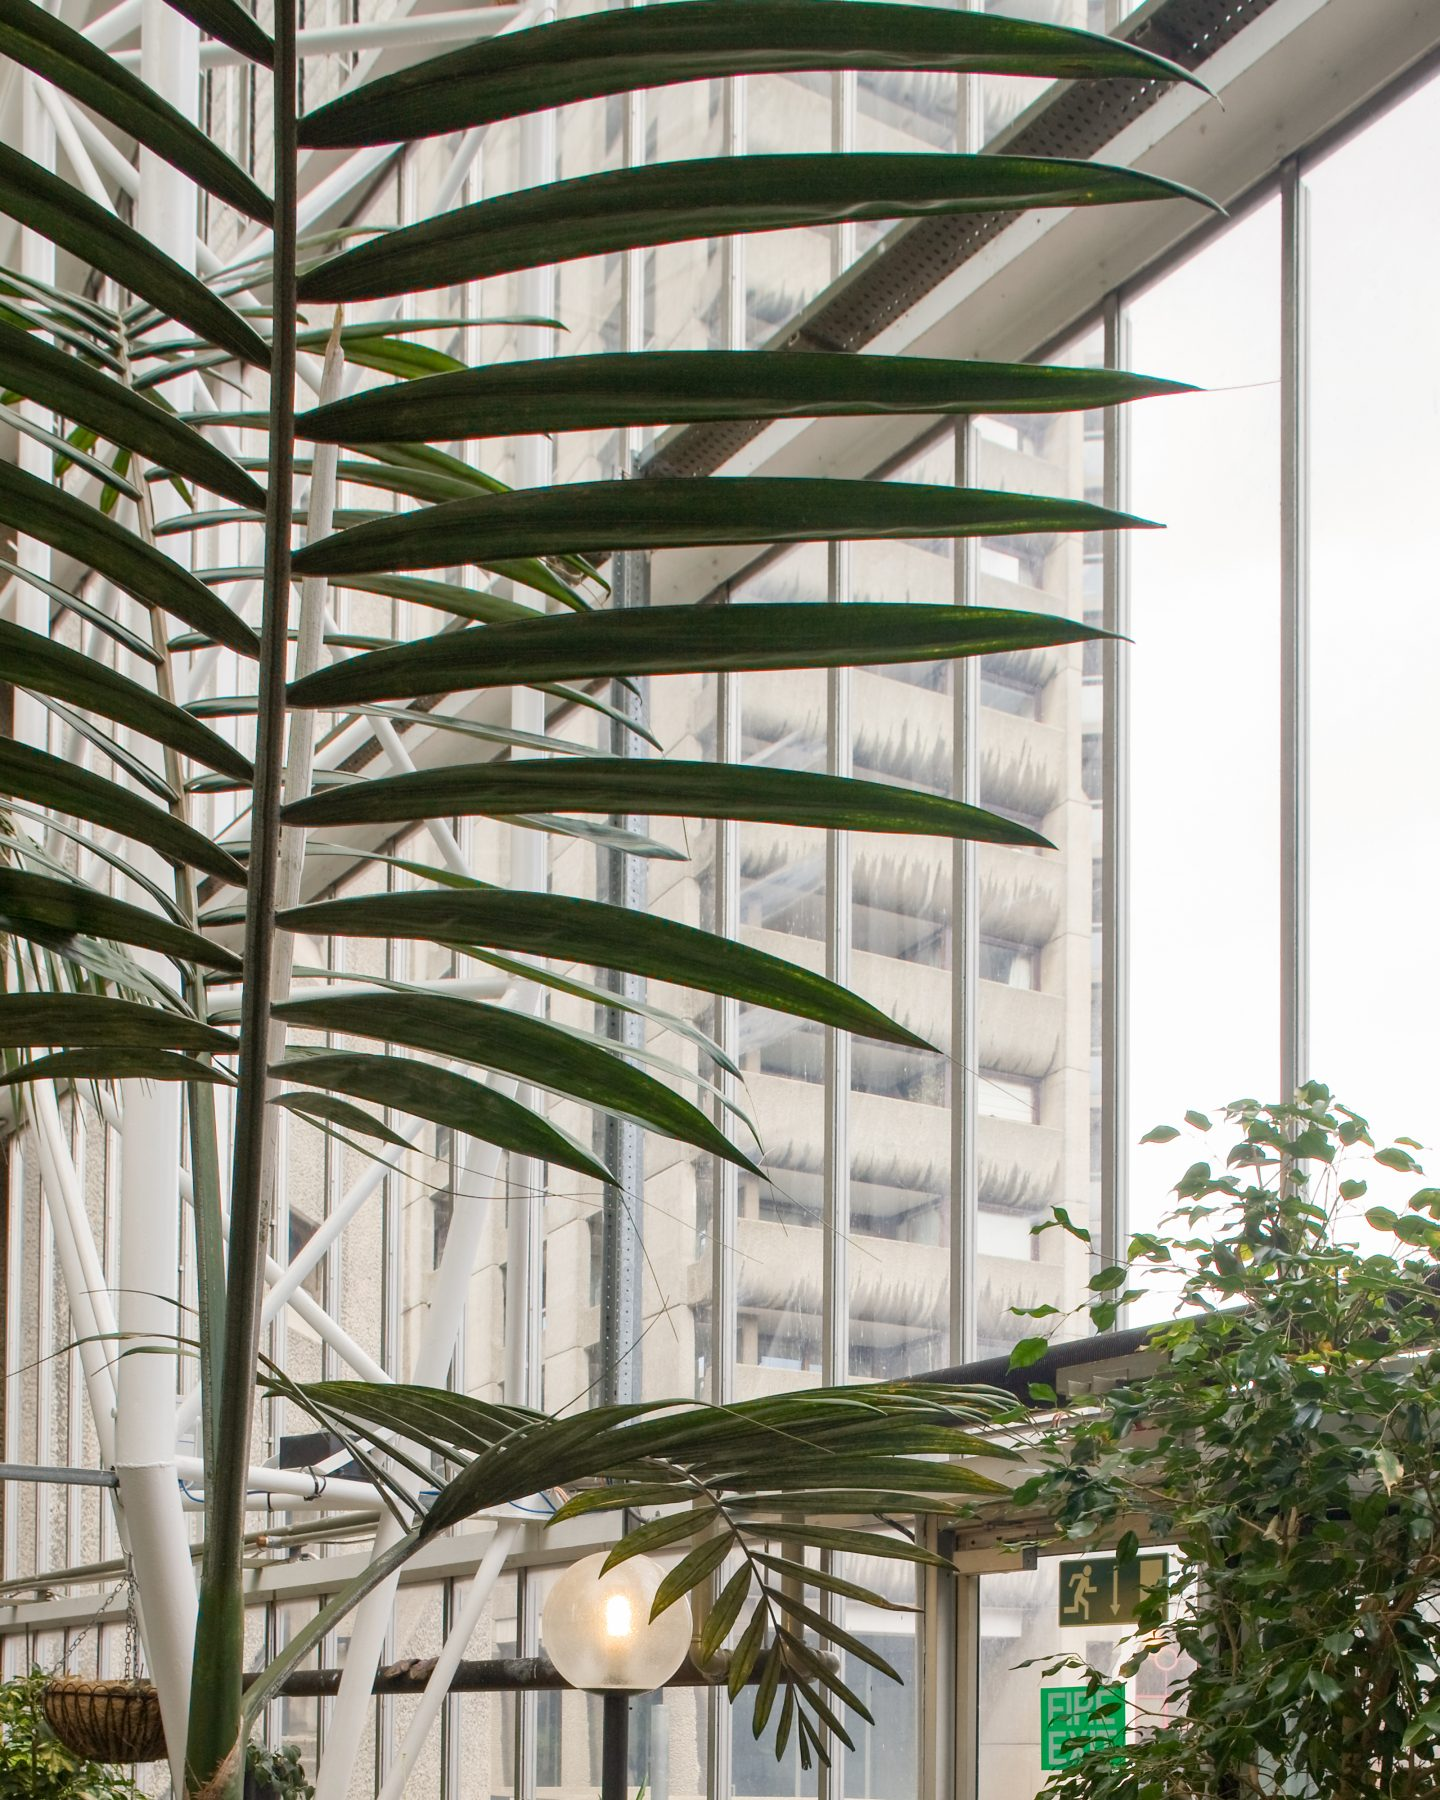 IGNANT-Travel-Luke-Hayes-The-Barbican-Conservatory-012